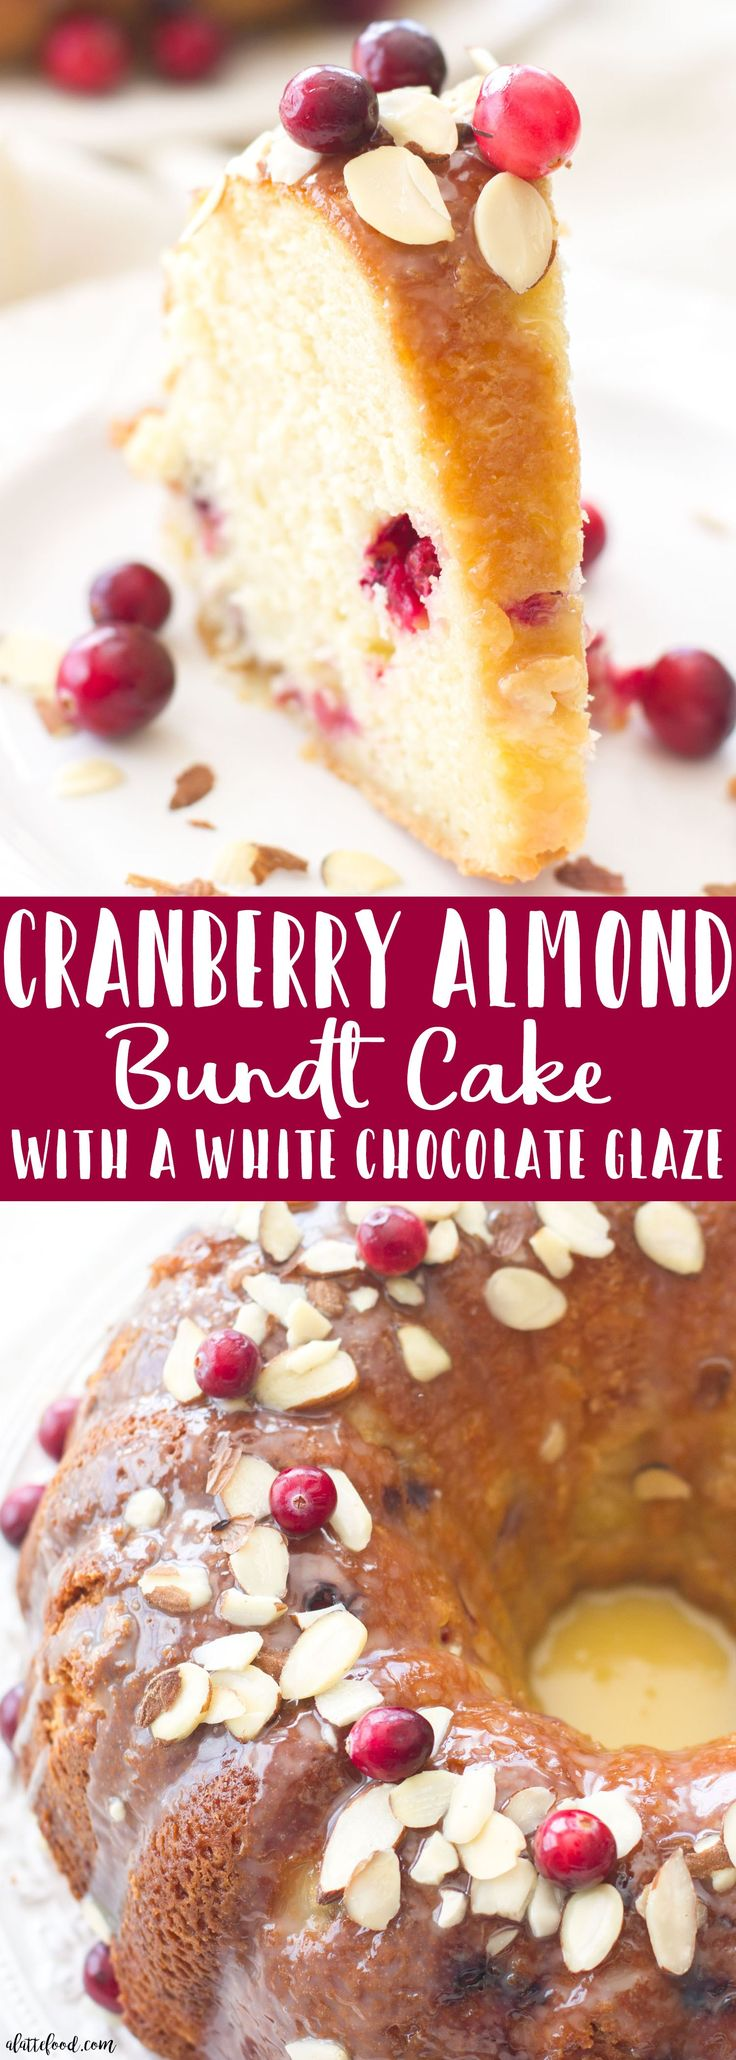 This easy cranberry almond bundt cake is made with fresh cranberries and topped with a white chocolate glaze! The sweet almond flavor pairs perfectly with the tart cranberry flavor. A fantastic Christmas dessert or Thanksgiving recipe!#cranberry #cakes #christmasdesserts #thanksgivingrecipes